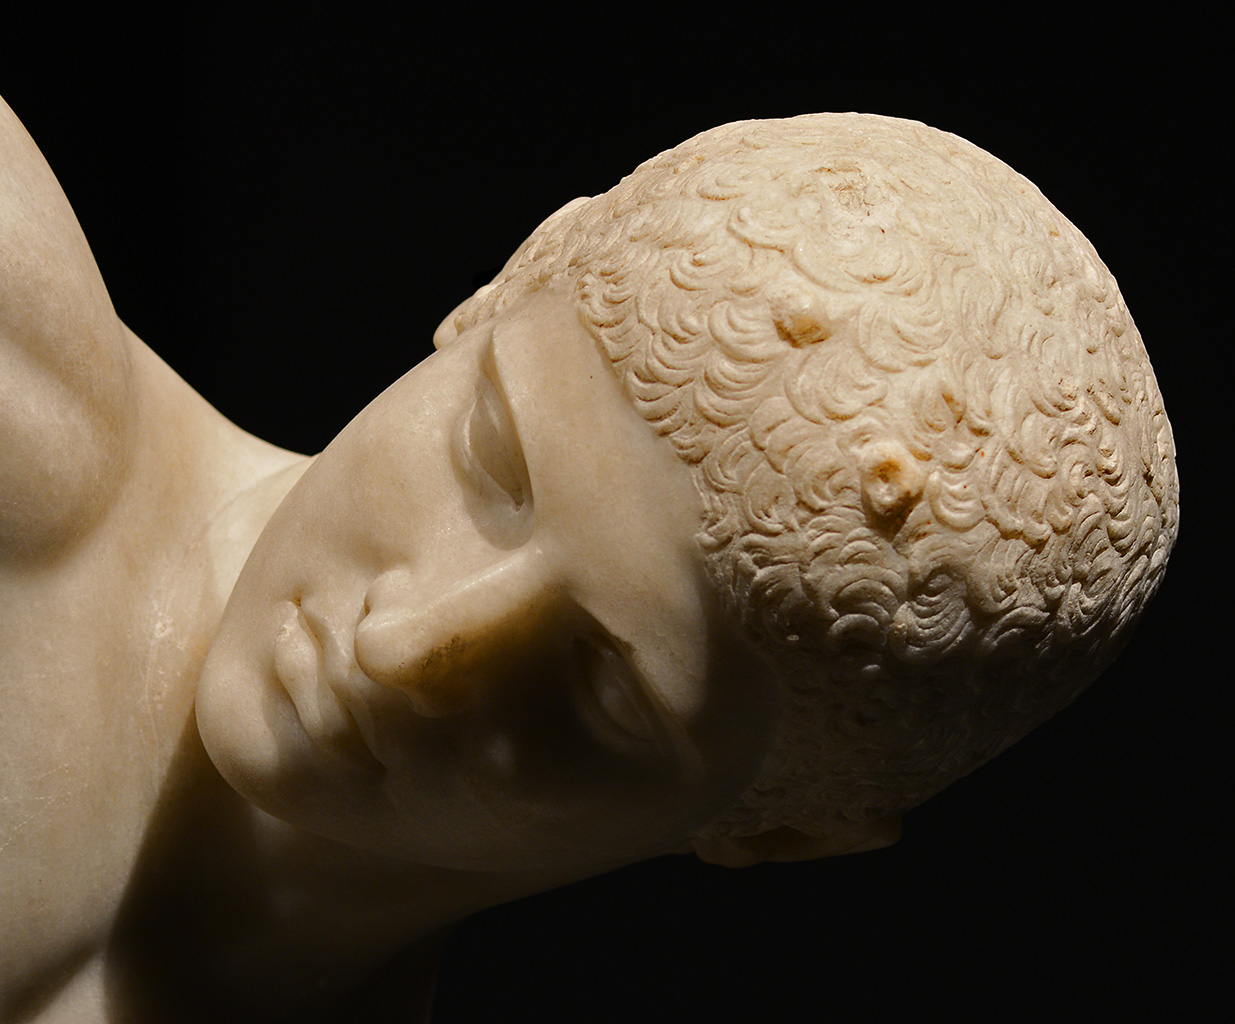 Discobolus (so-called Lancelotti or Palombara discobolus) — close-up. Parian marble. Roman copy of mid-2nd cent. CE from a bronze original by Myron of ca. 450 BCE. Inv. No. 126371. Rome, Roman National Museum, Palazzo Massimo alle Terme